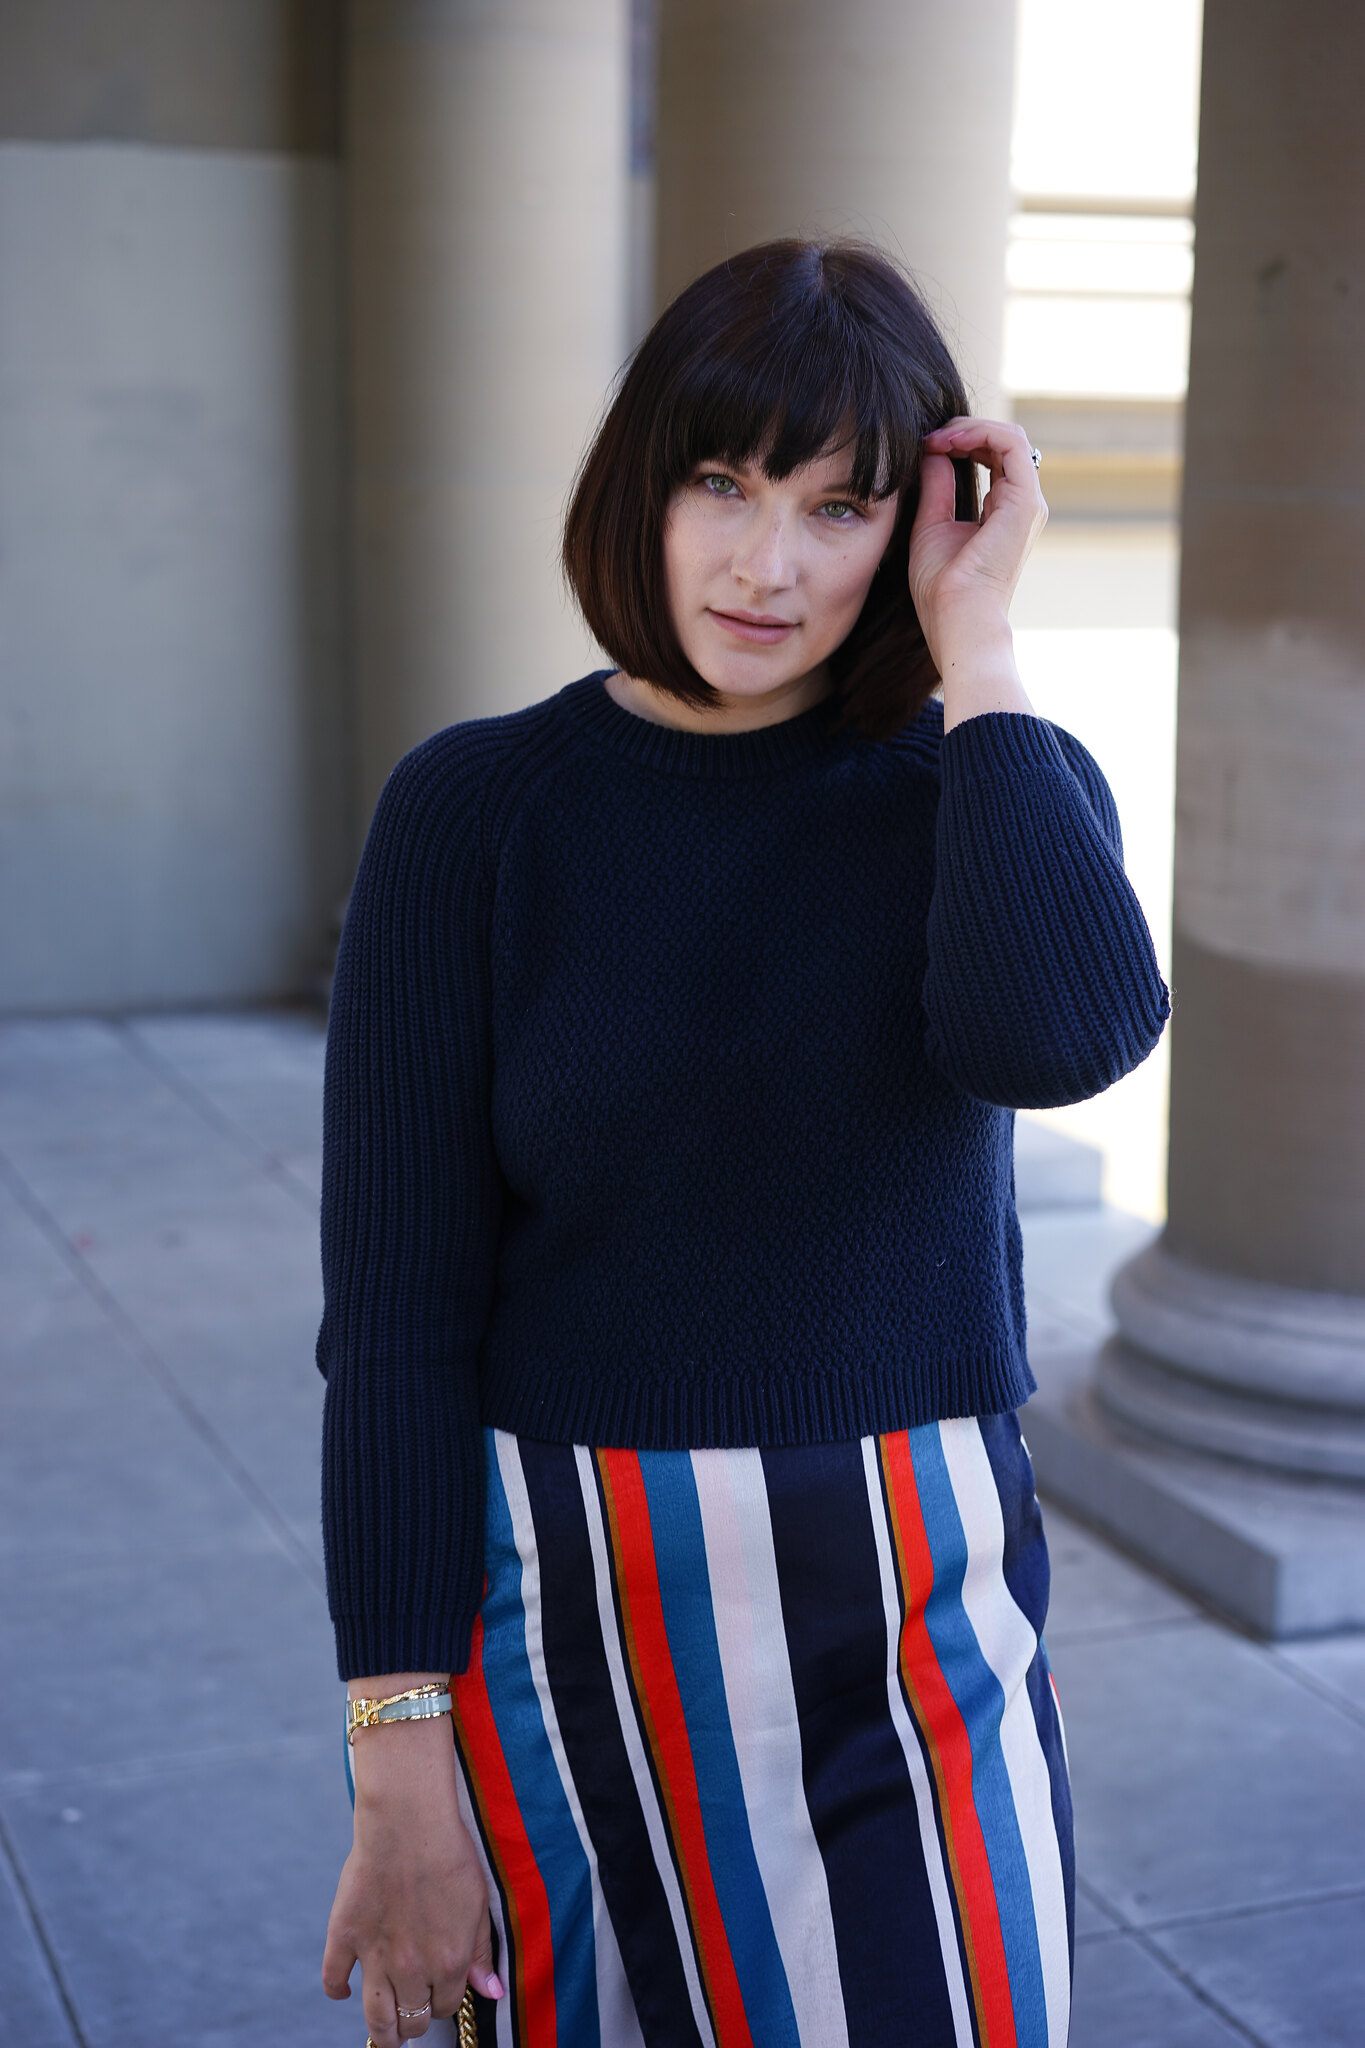 Zara, Whistles, cotton knitwear, mom blogger, postpartum, OOTD, stripe skirt, fashion blog